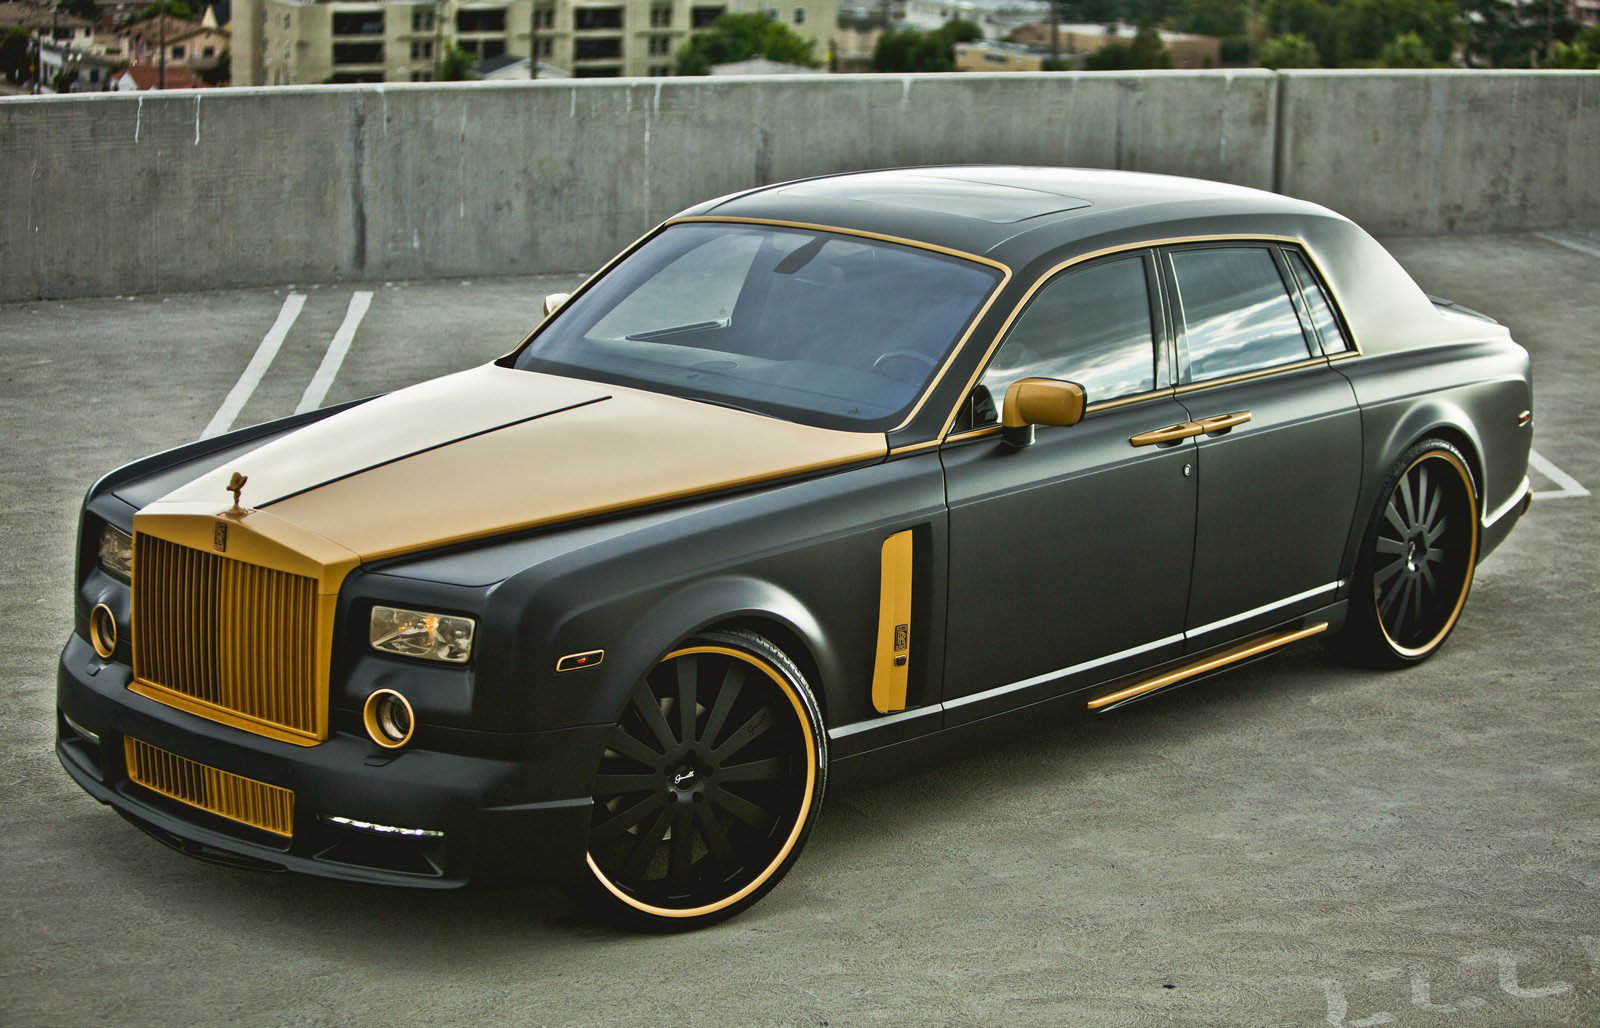 Rolls-Royce Phantom - 1600 x 1028, 08 из 13